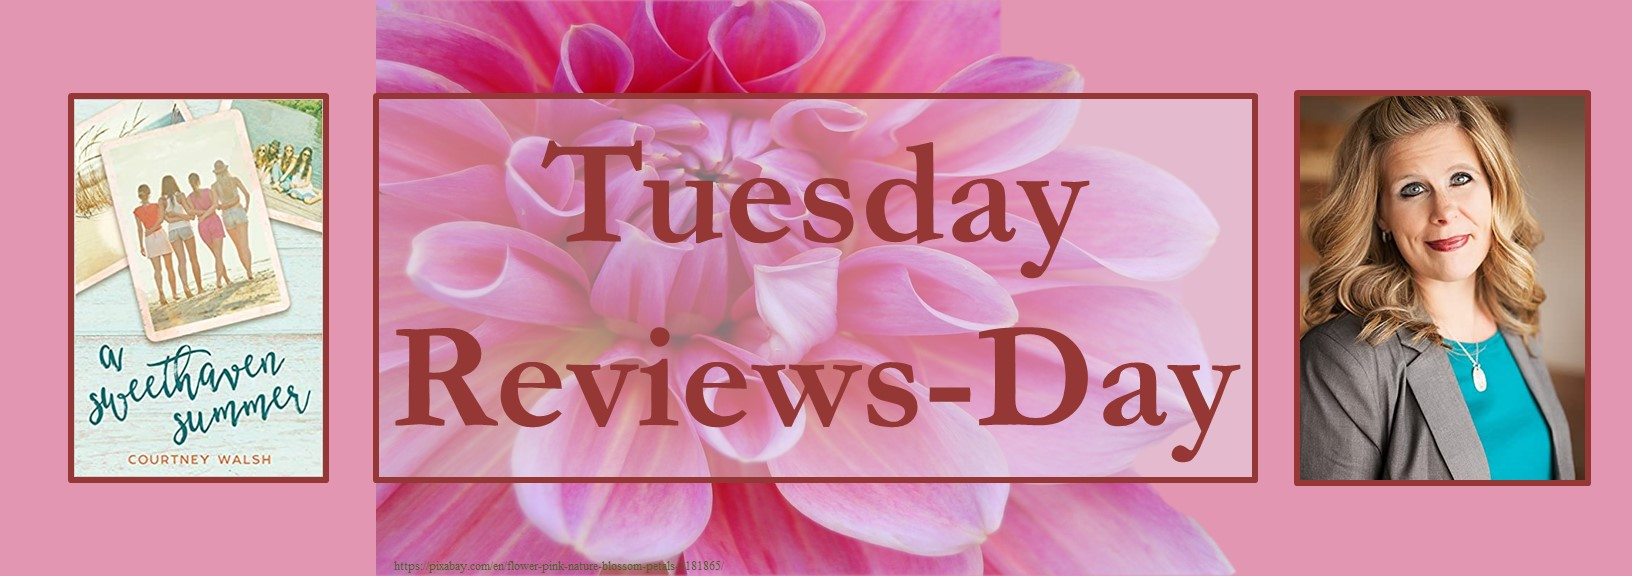 062921 - sweethaven summer - tuesday reviews day banner